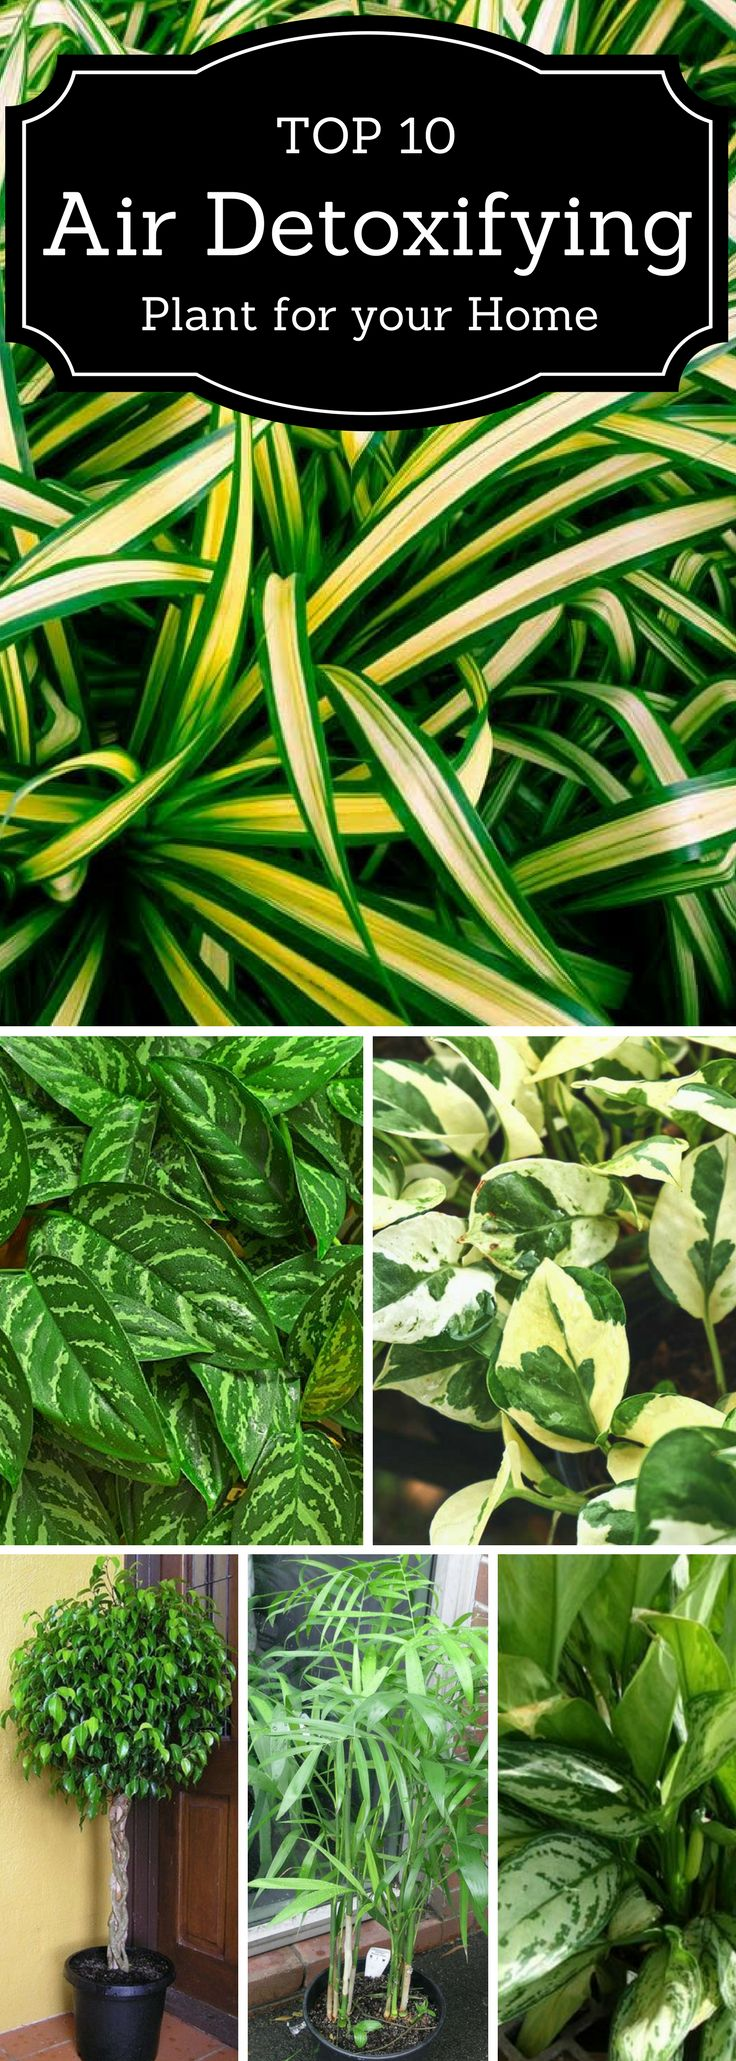 Top 10 Air Detoxifying Plants for Your Home #detox #plants